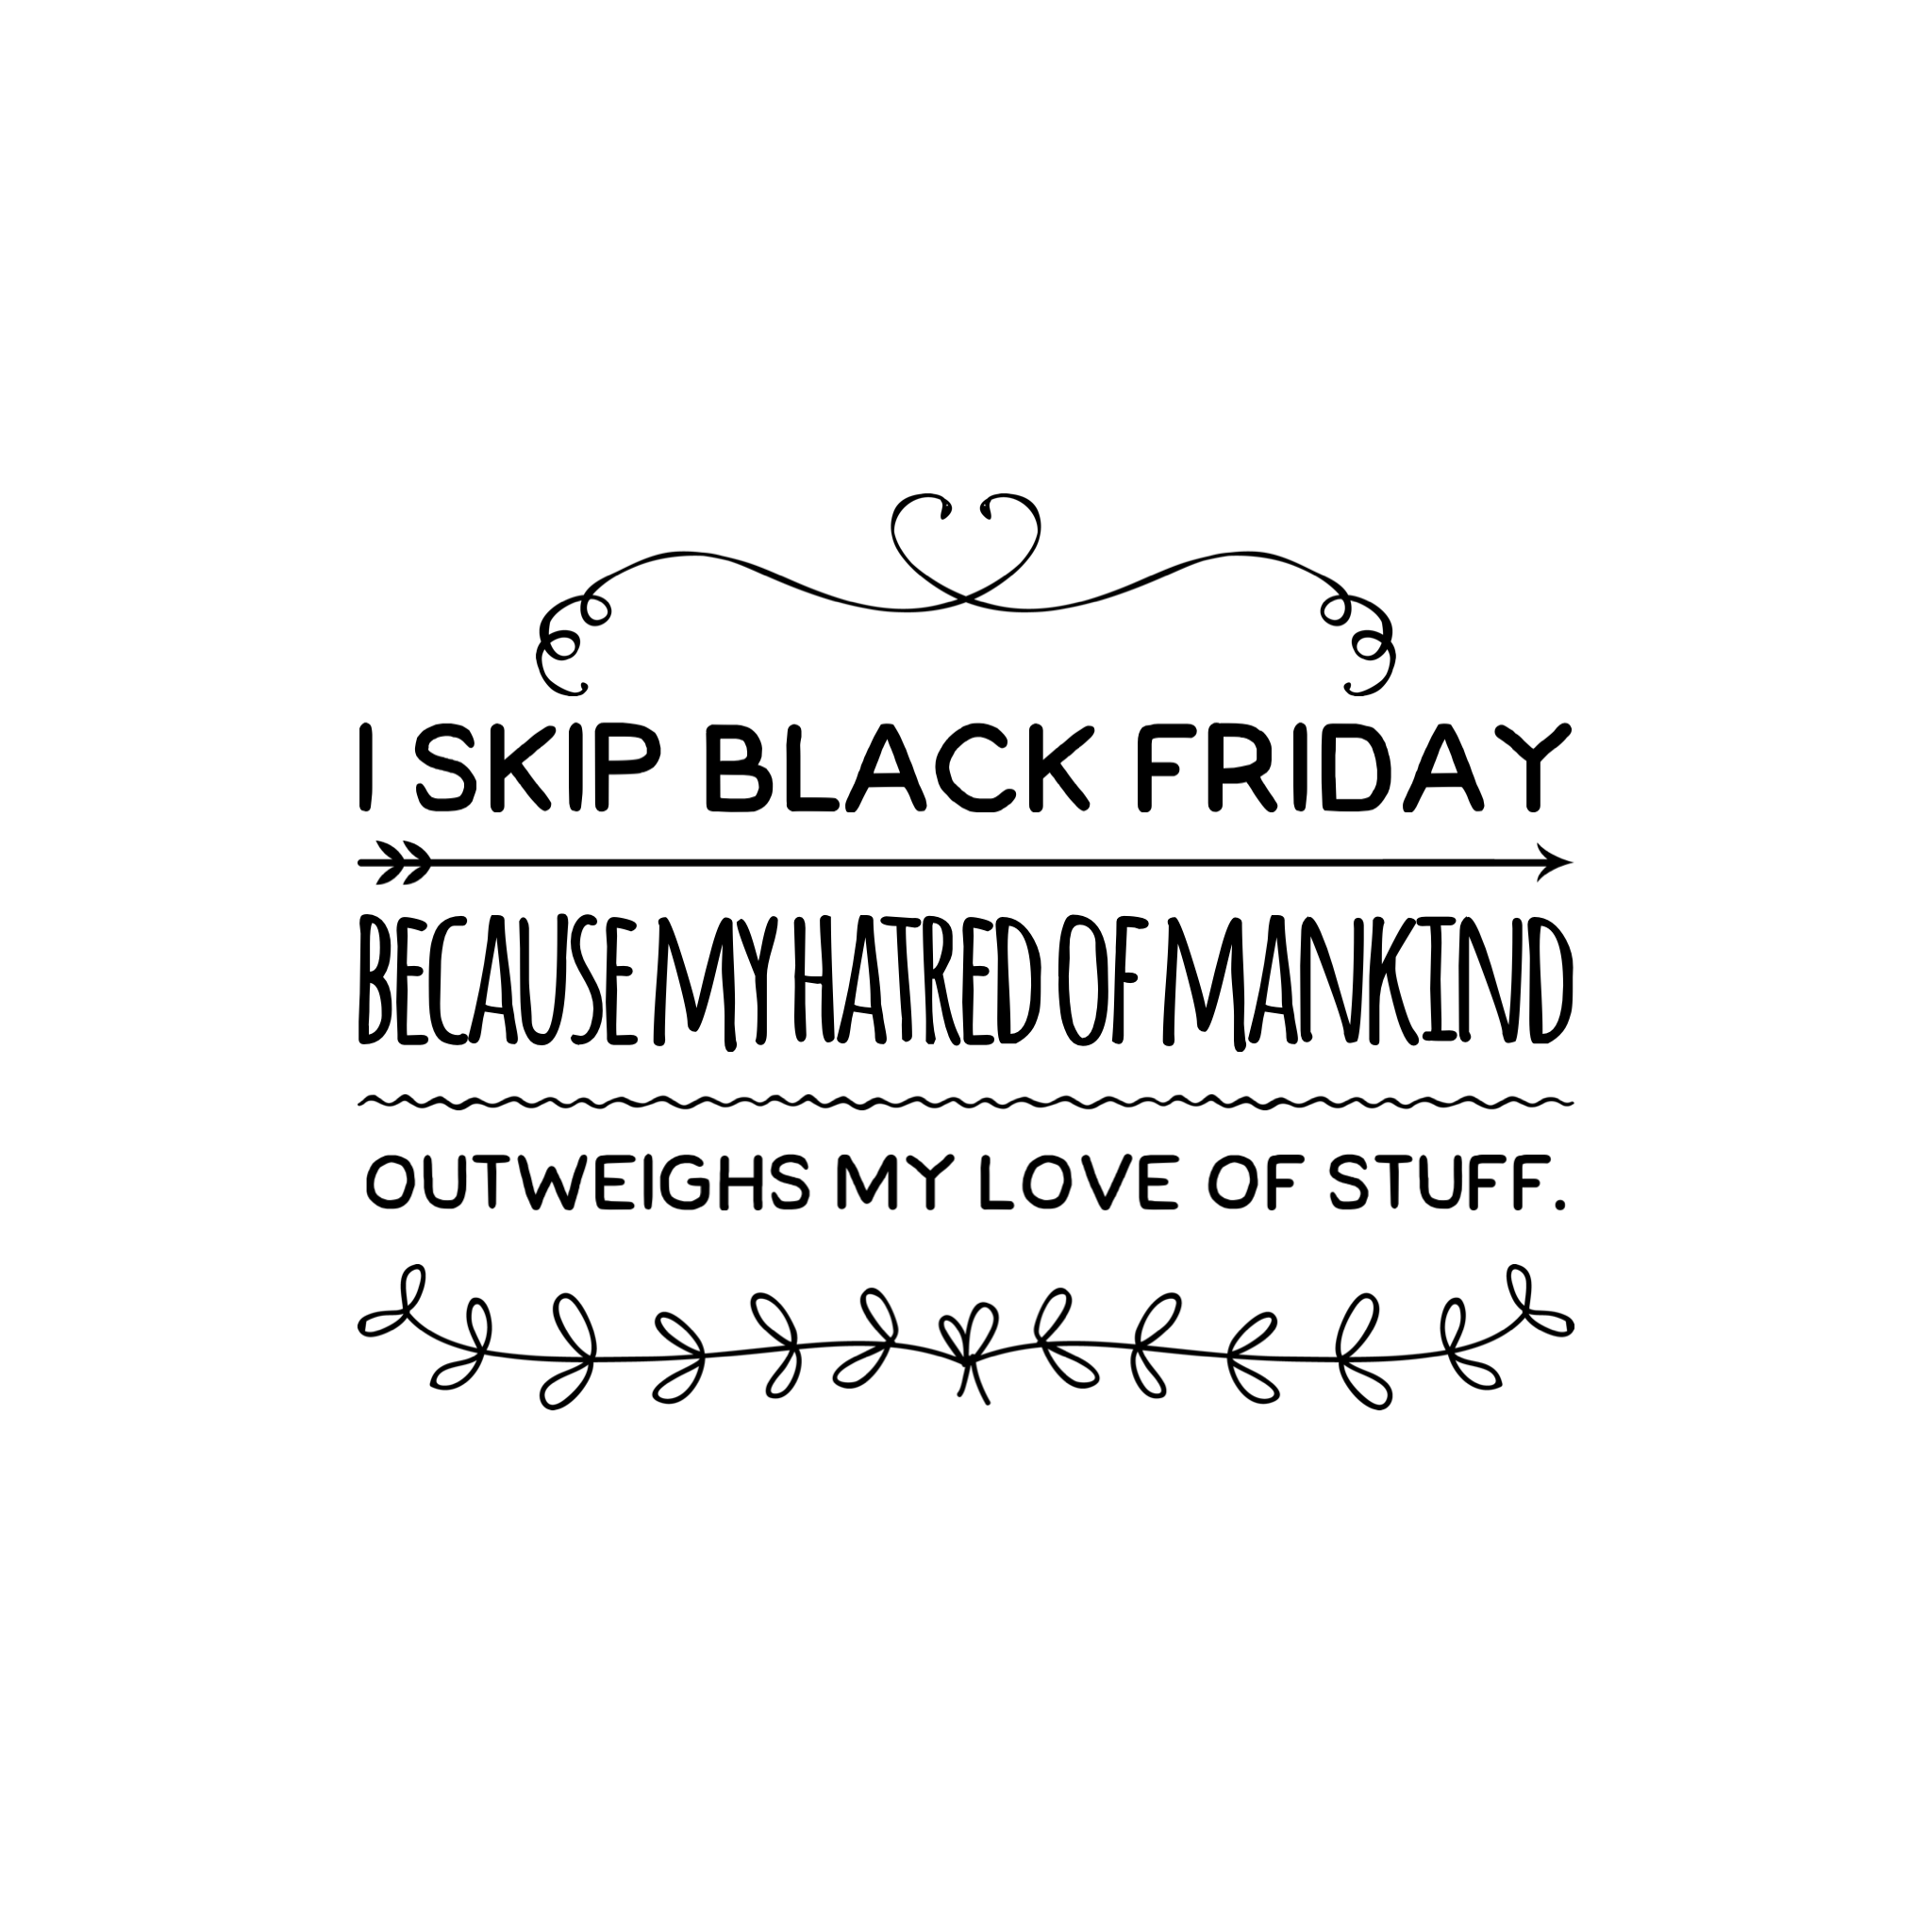 I Skip Black Friday Funny Quotes Just For Laughs Make Me Laugh